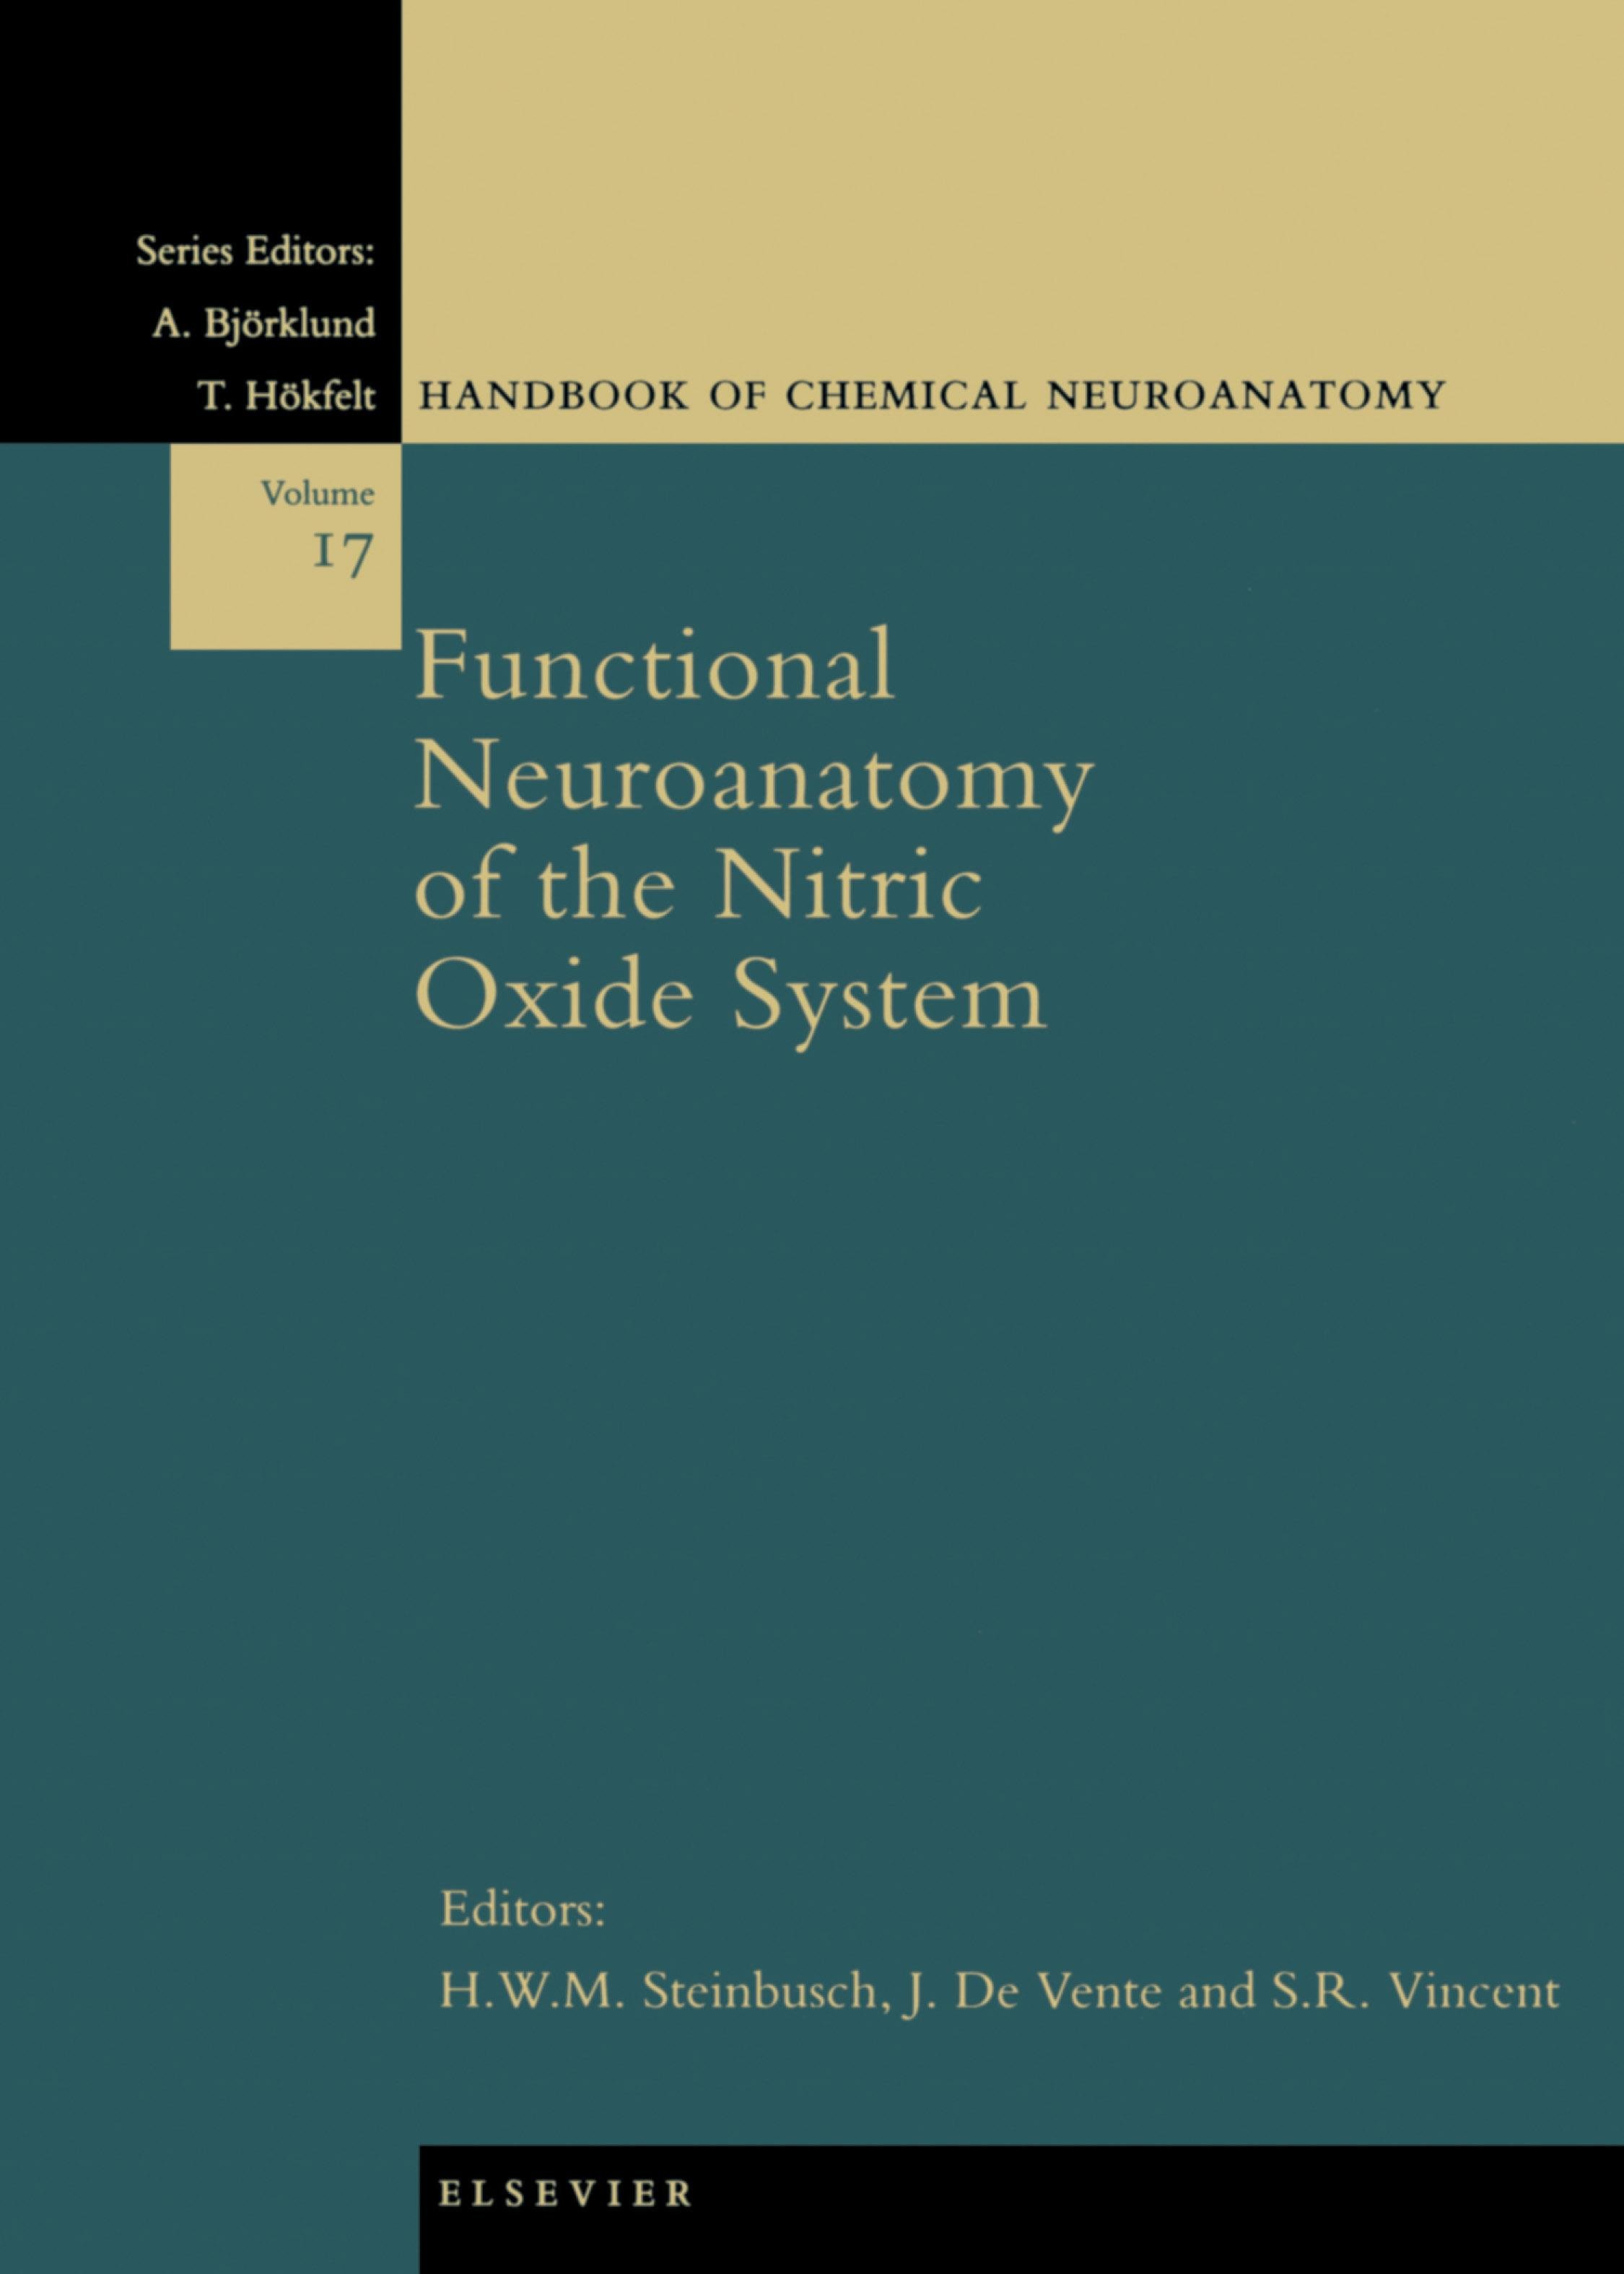 Functional Neuroanatomy of the Nitric Oxide System EB9780080532080